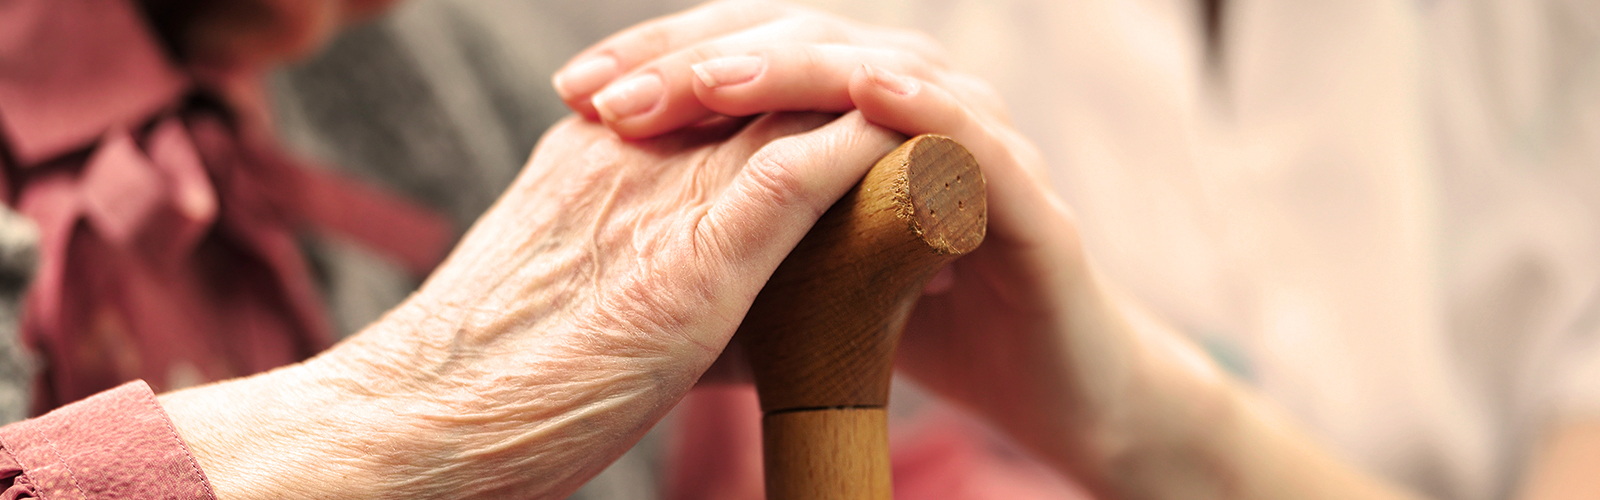 Elderly woman holding hands with younger woman – finding support from local organizations and charities